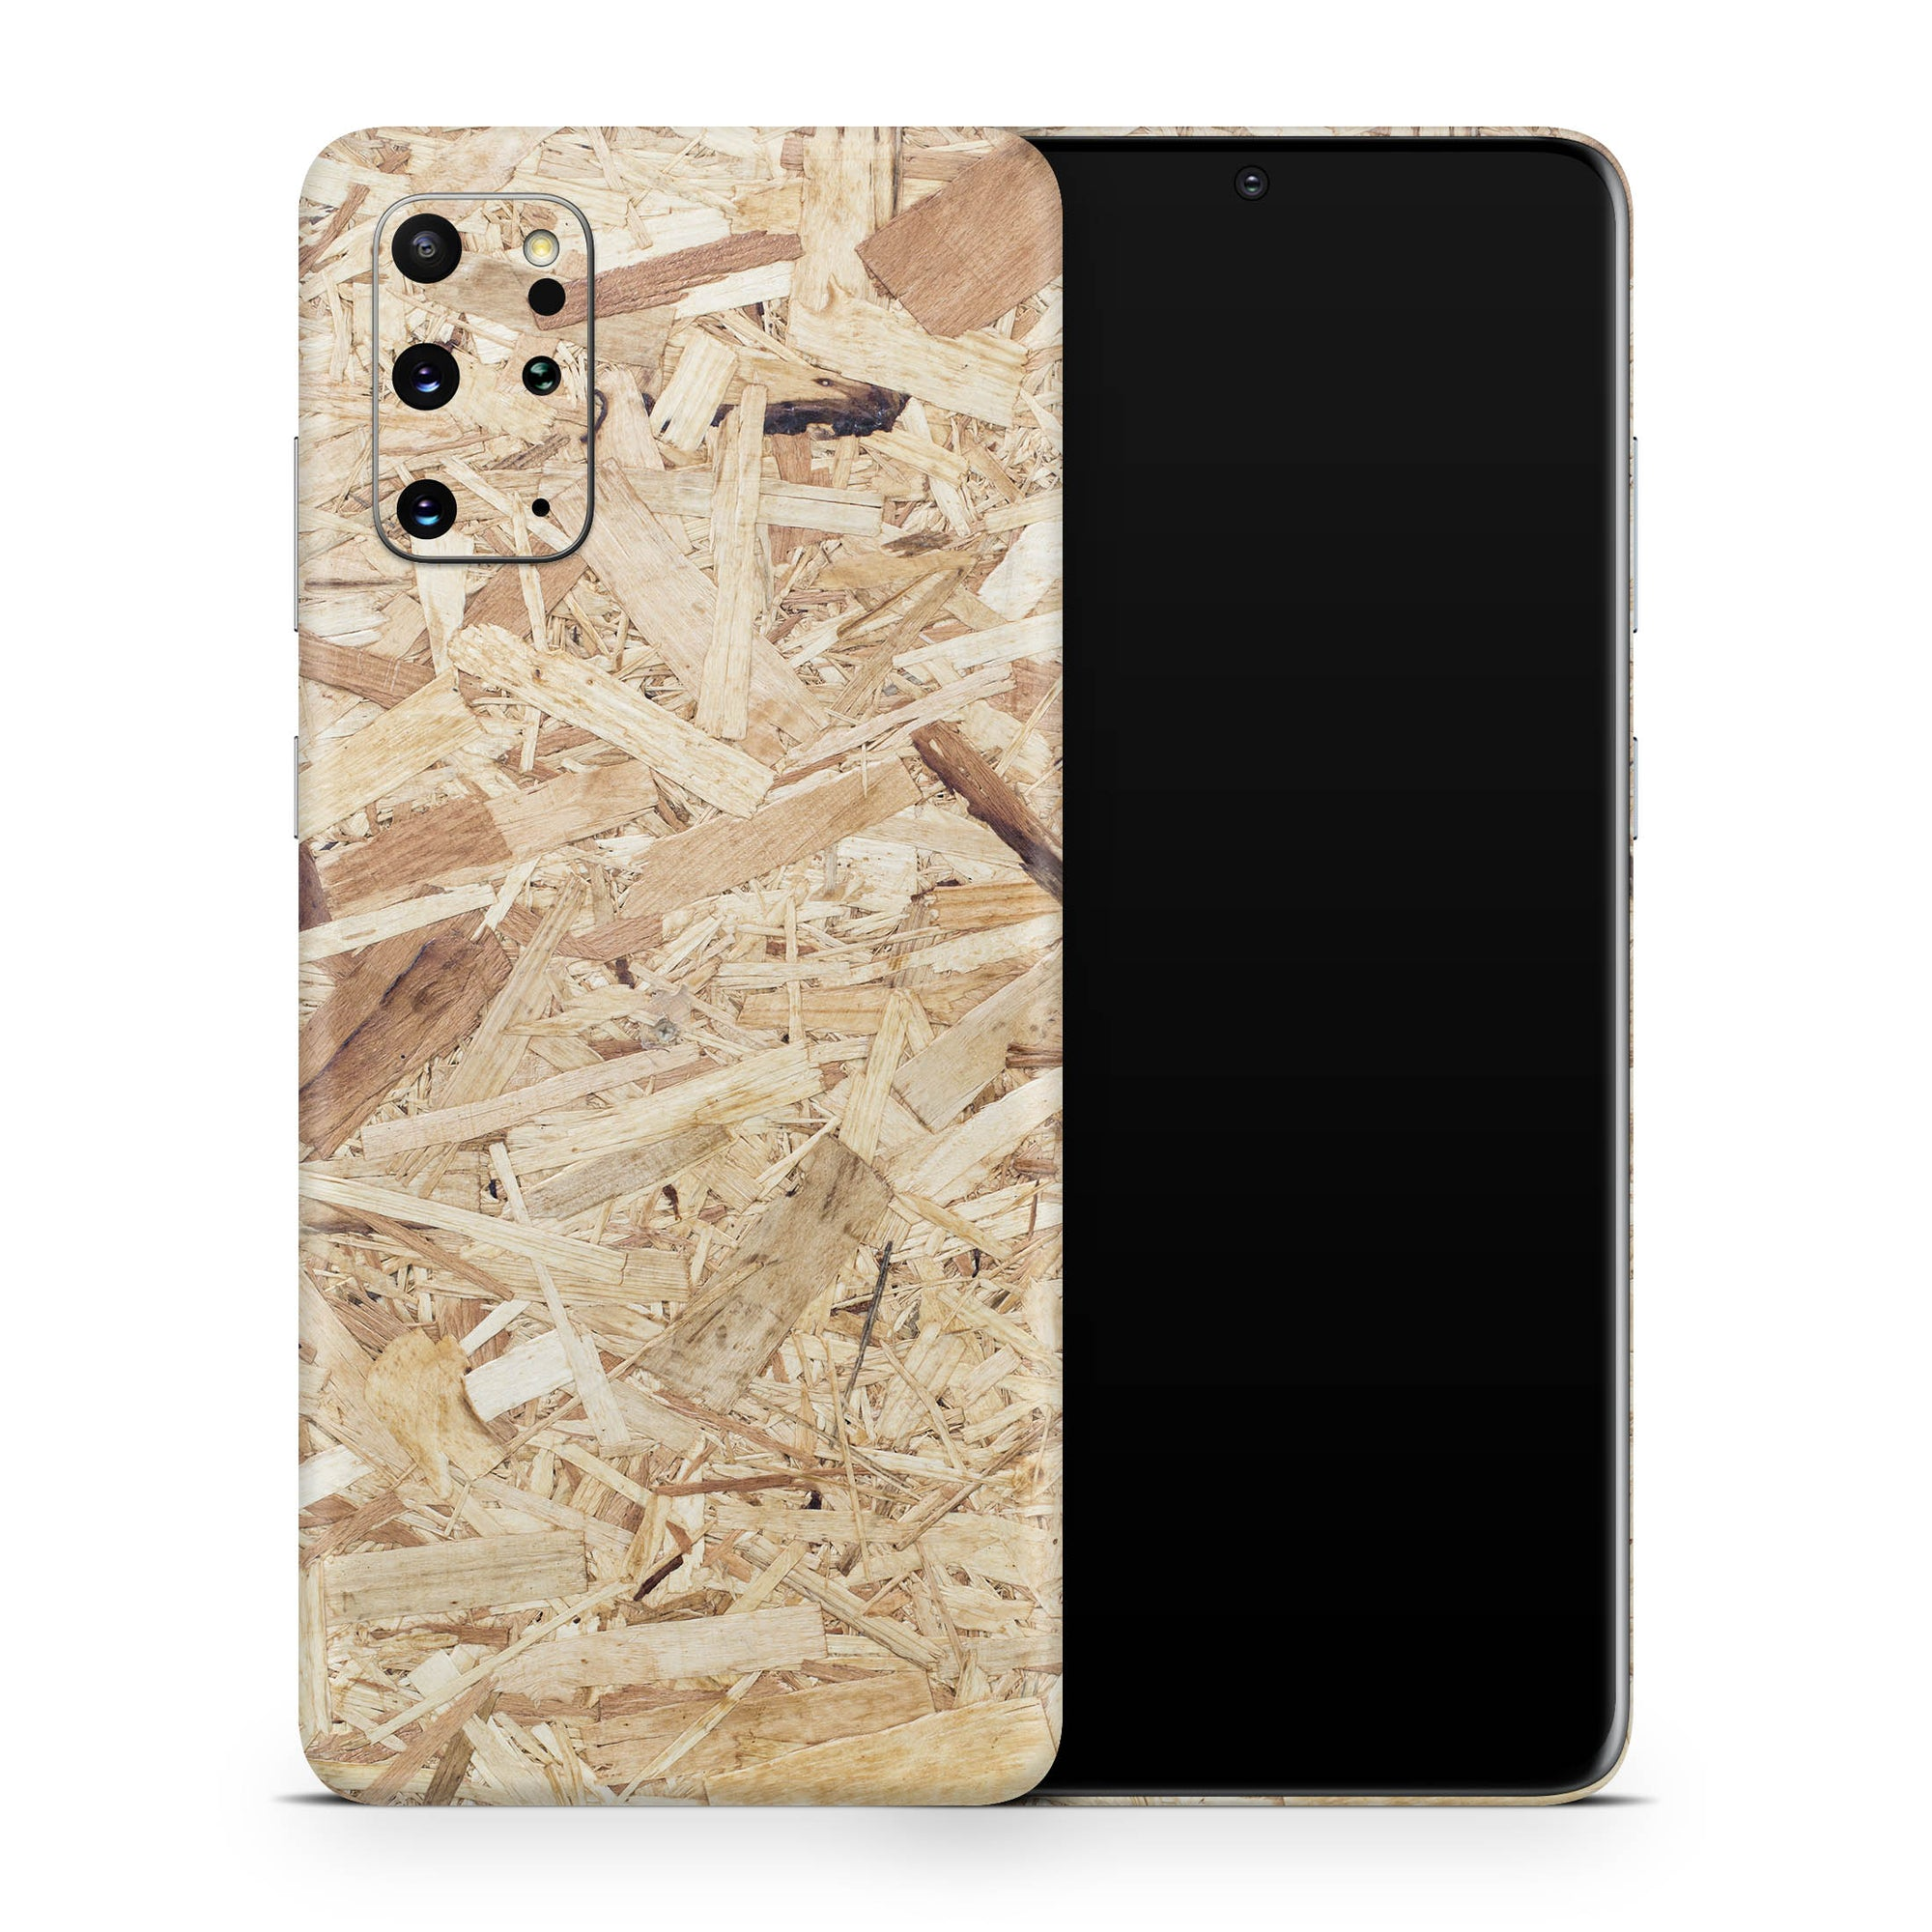 Plywood Galaxy S20 Ultra Skin + Case-Uniqfind